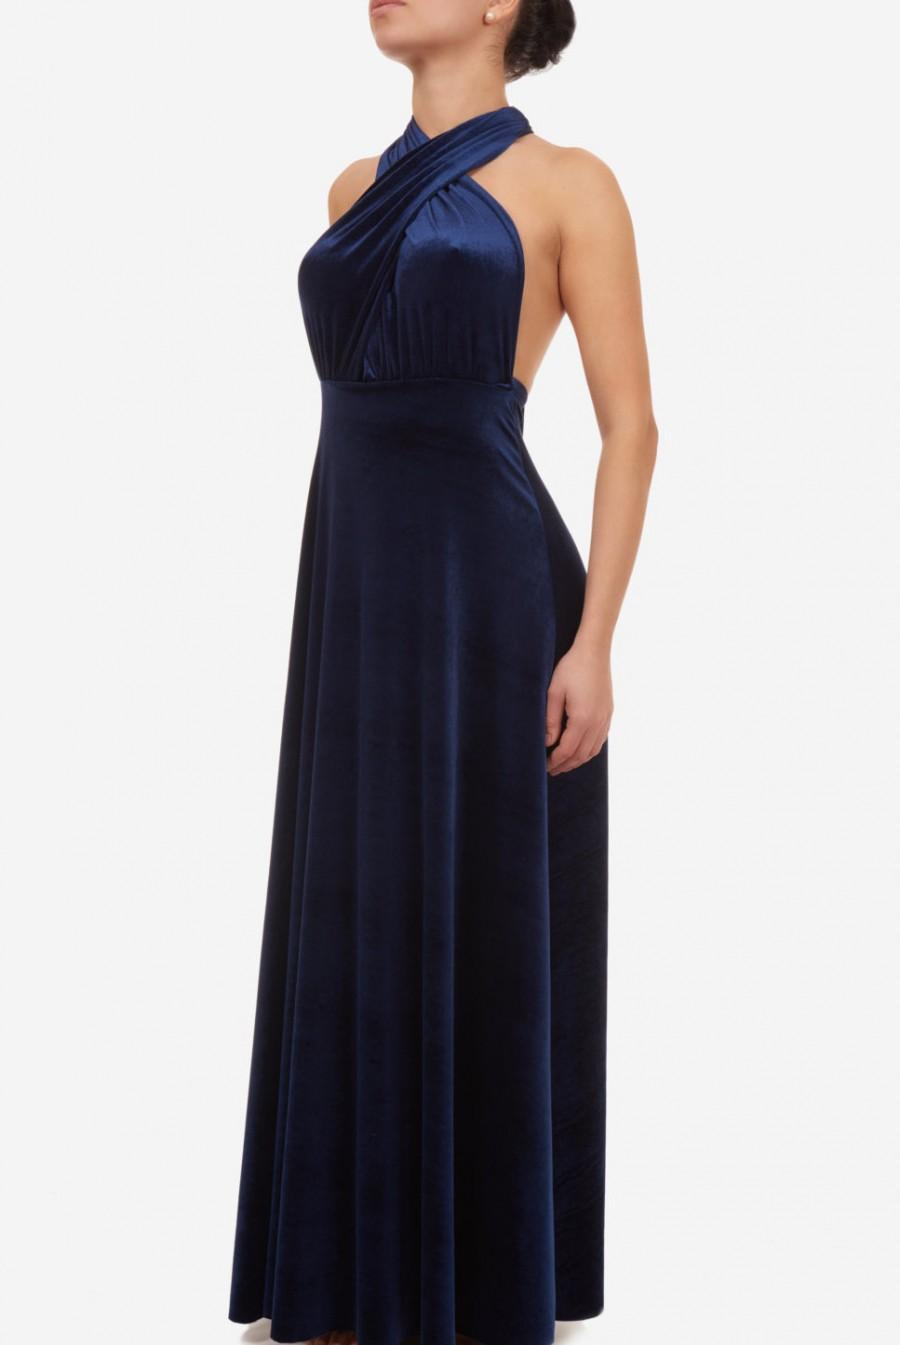 Свадьба - Infinity dress, prom dress, bridesmaid dress, blue velvet dress, ball gown, long dress, evening dress, party dress, cocktail dress